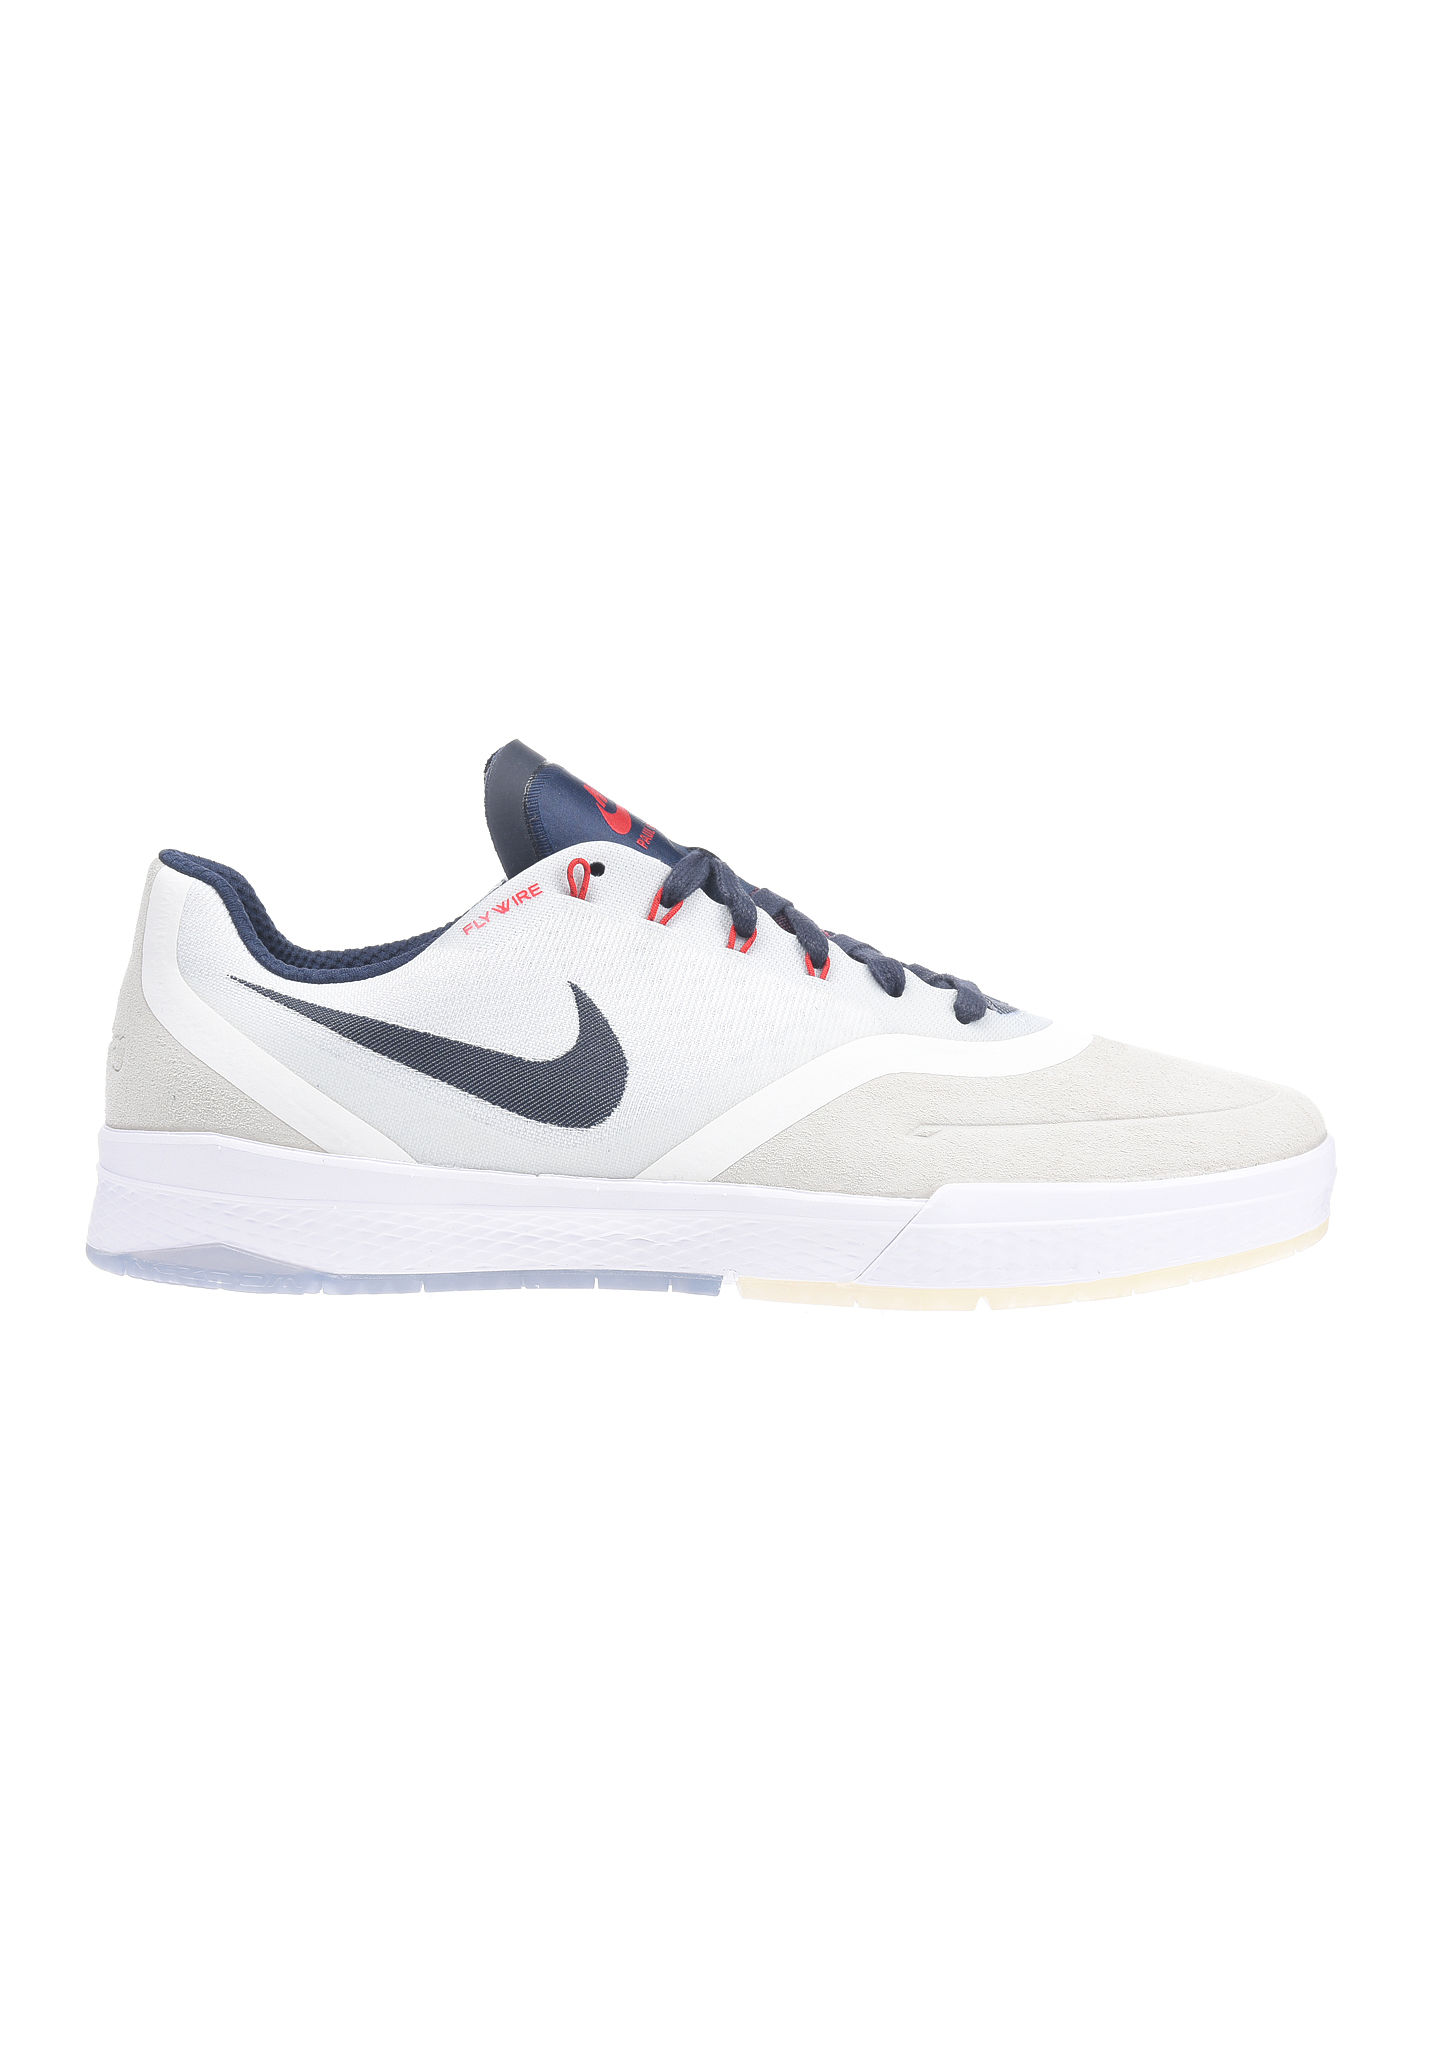 the best attitude 912df 9ec3c nike paul rodriguez 10 plata baratas> OFF73% rebajas